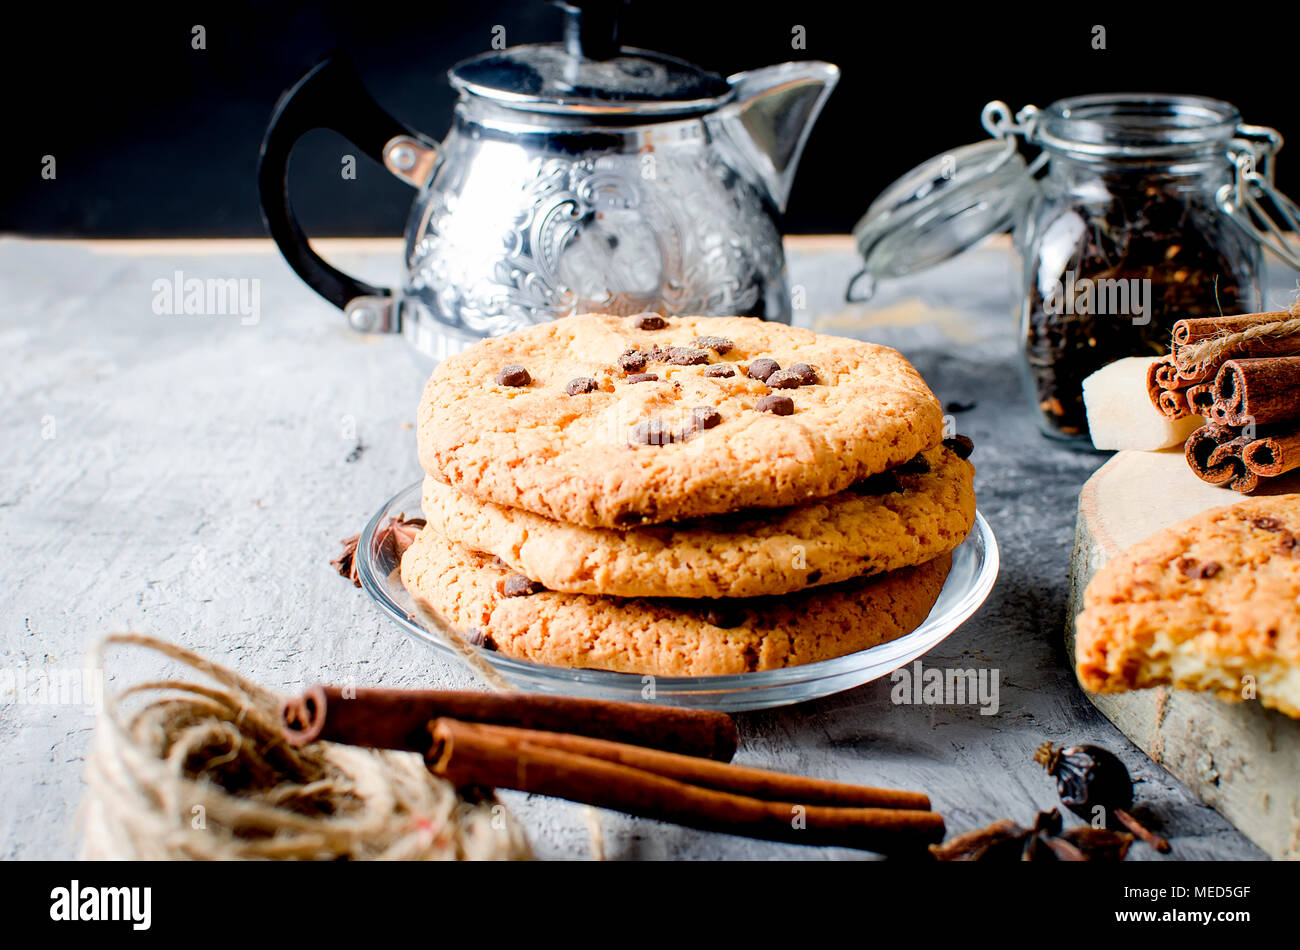 homemade cookies with chocolate drops, сup of hot black tea, cinnamon, anise on dark   background, spices for tea. - Stock Image